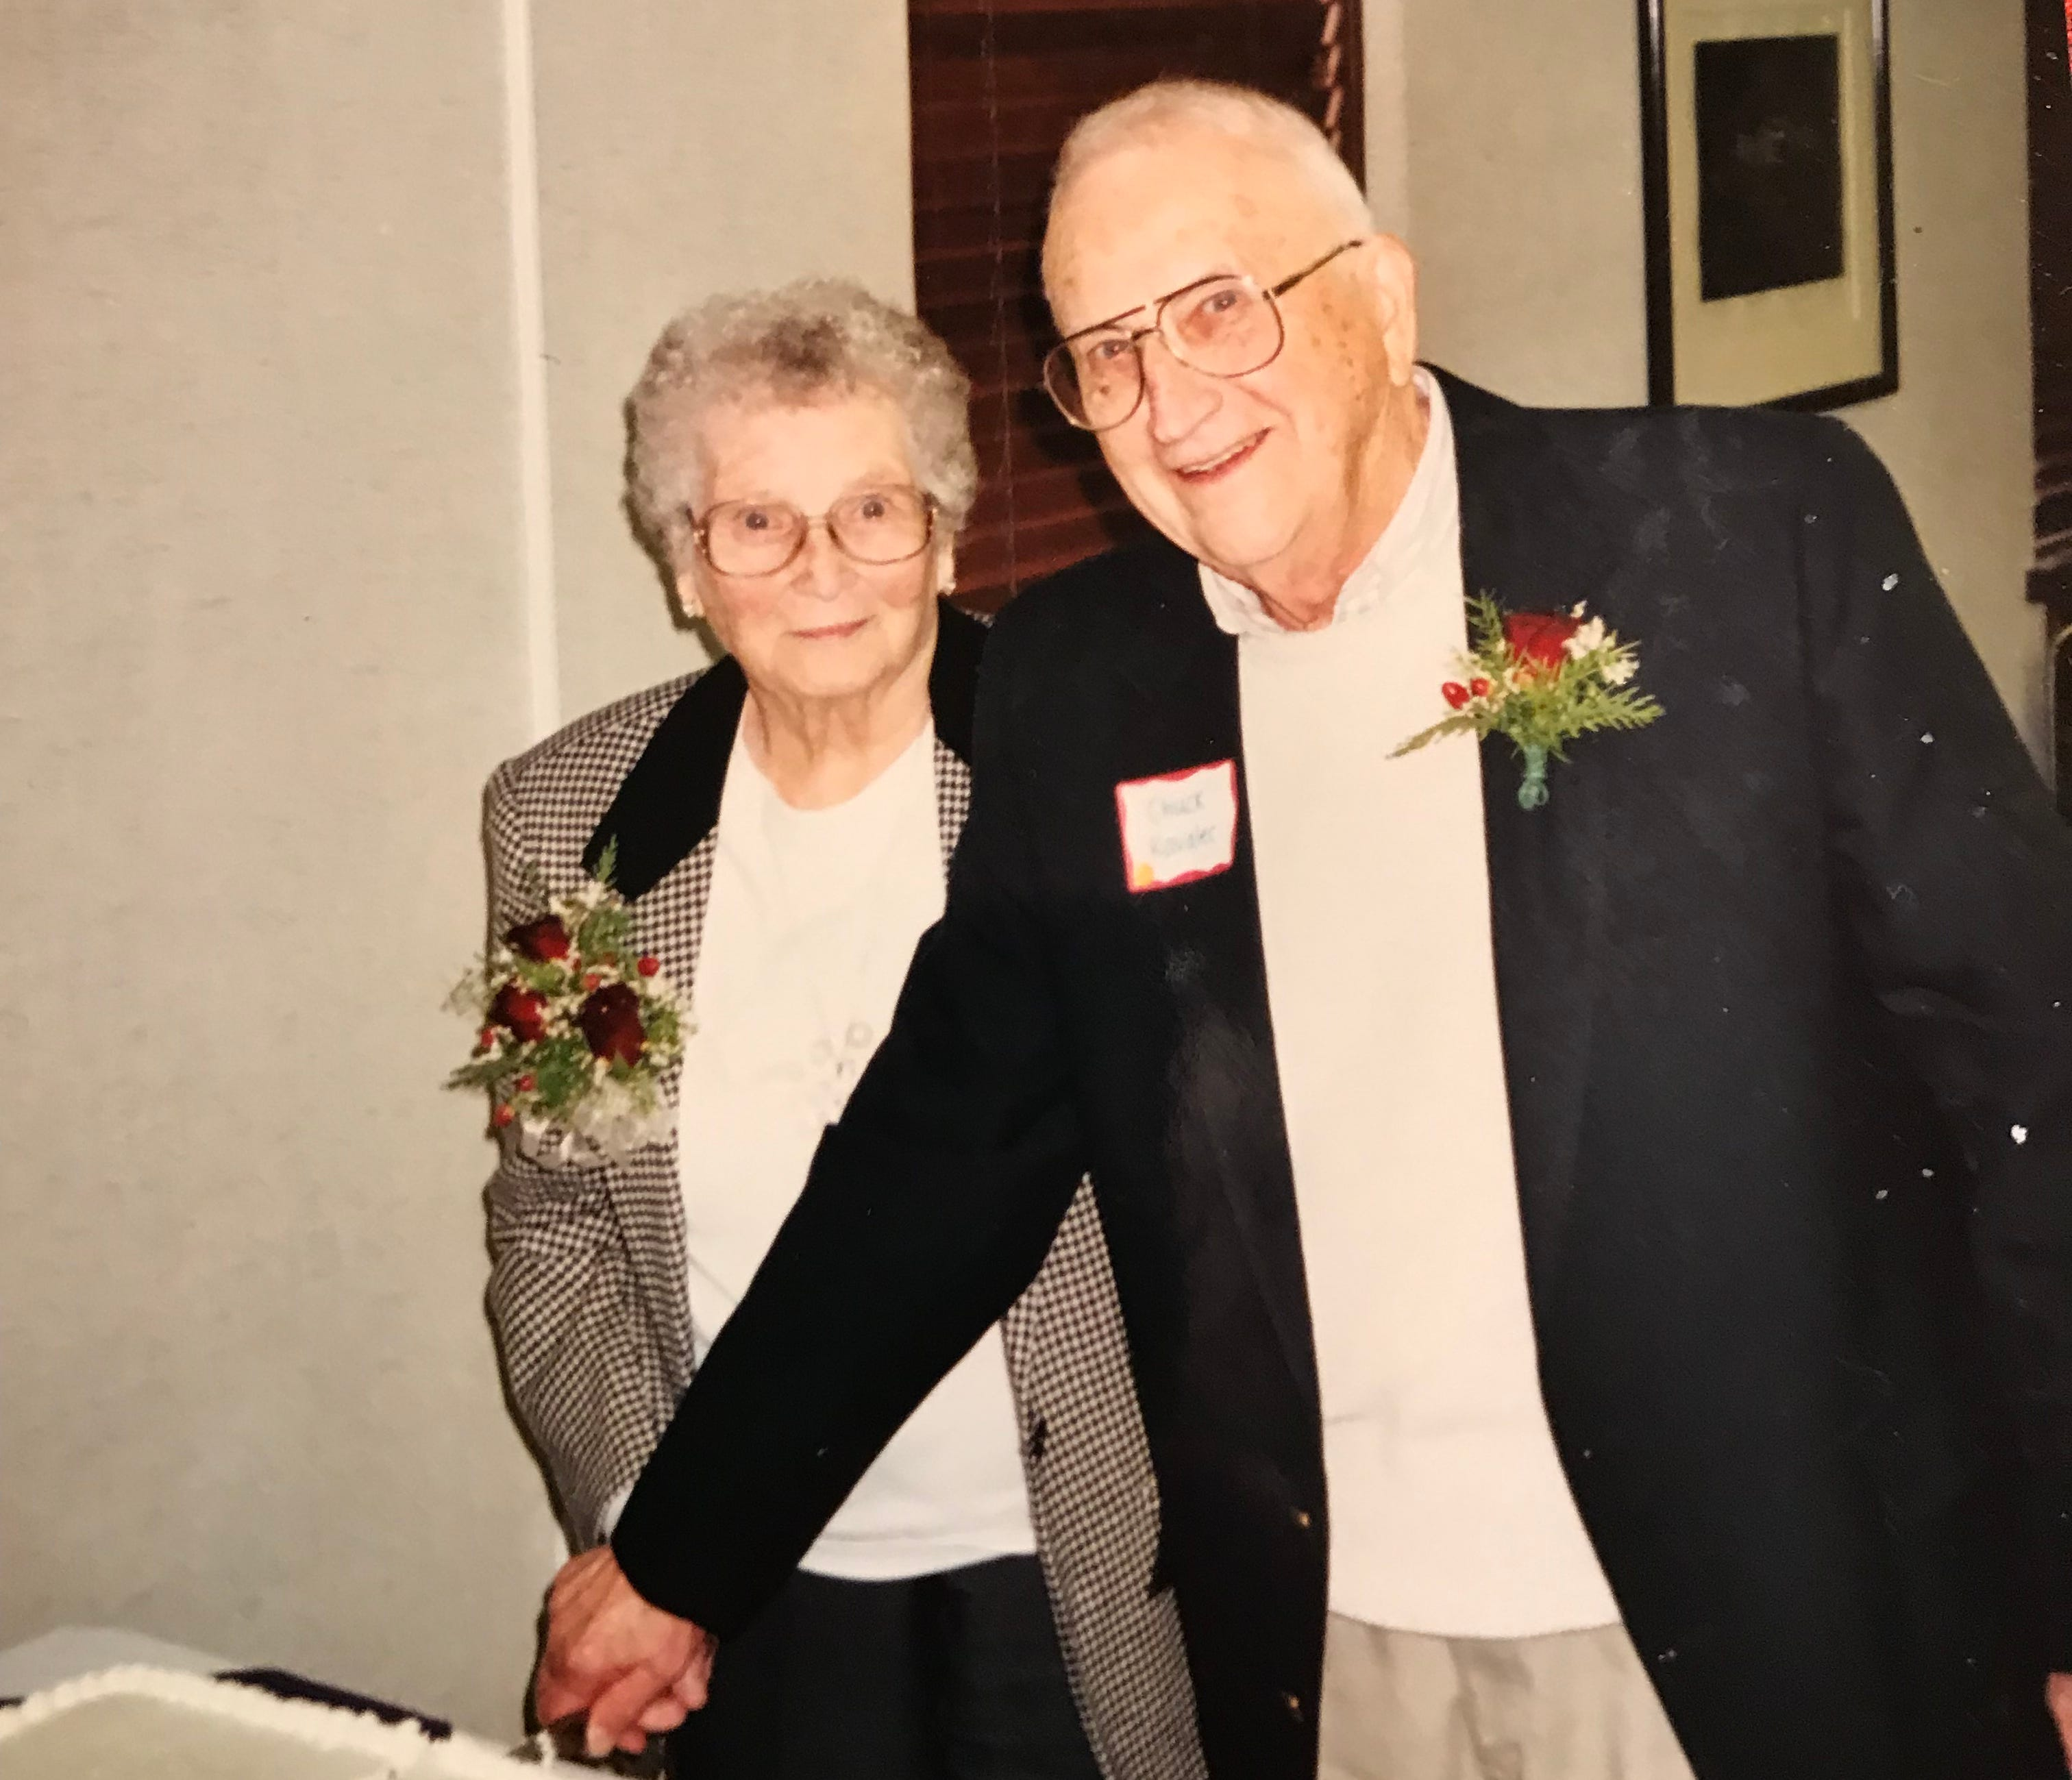 Chuck and Mary Kavalec at their 60th wedding anniversary.